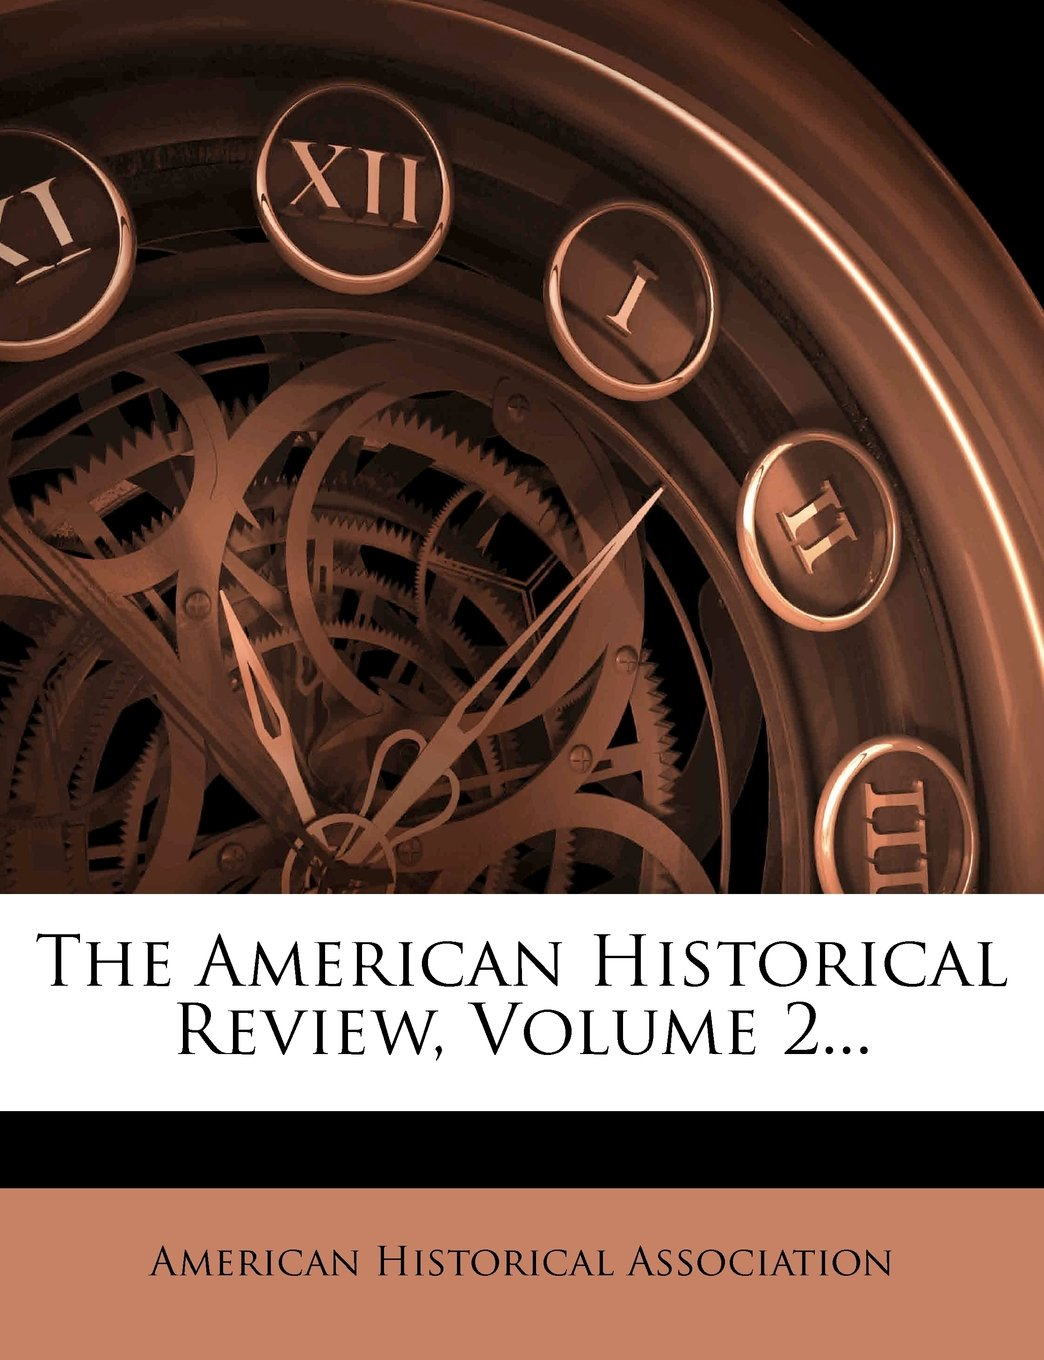 Download The American Historical Review, Volume 2... Text fb2 book